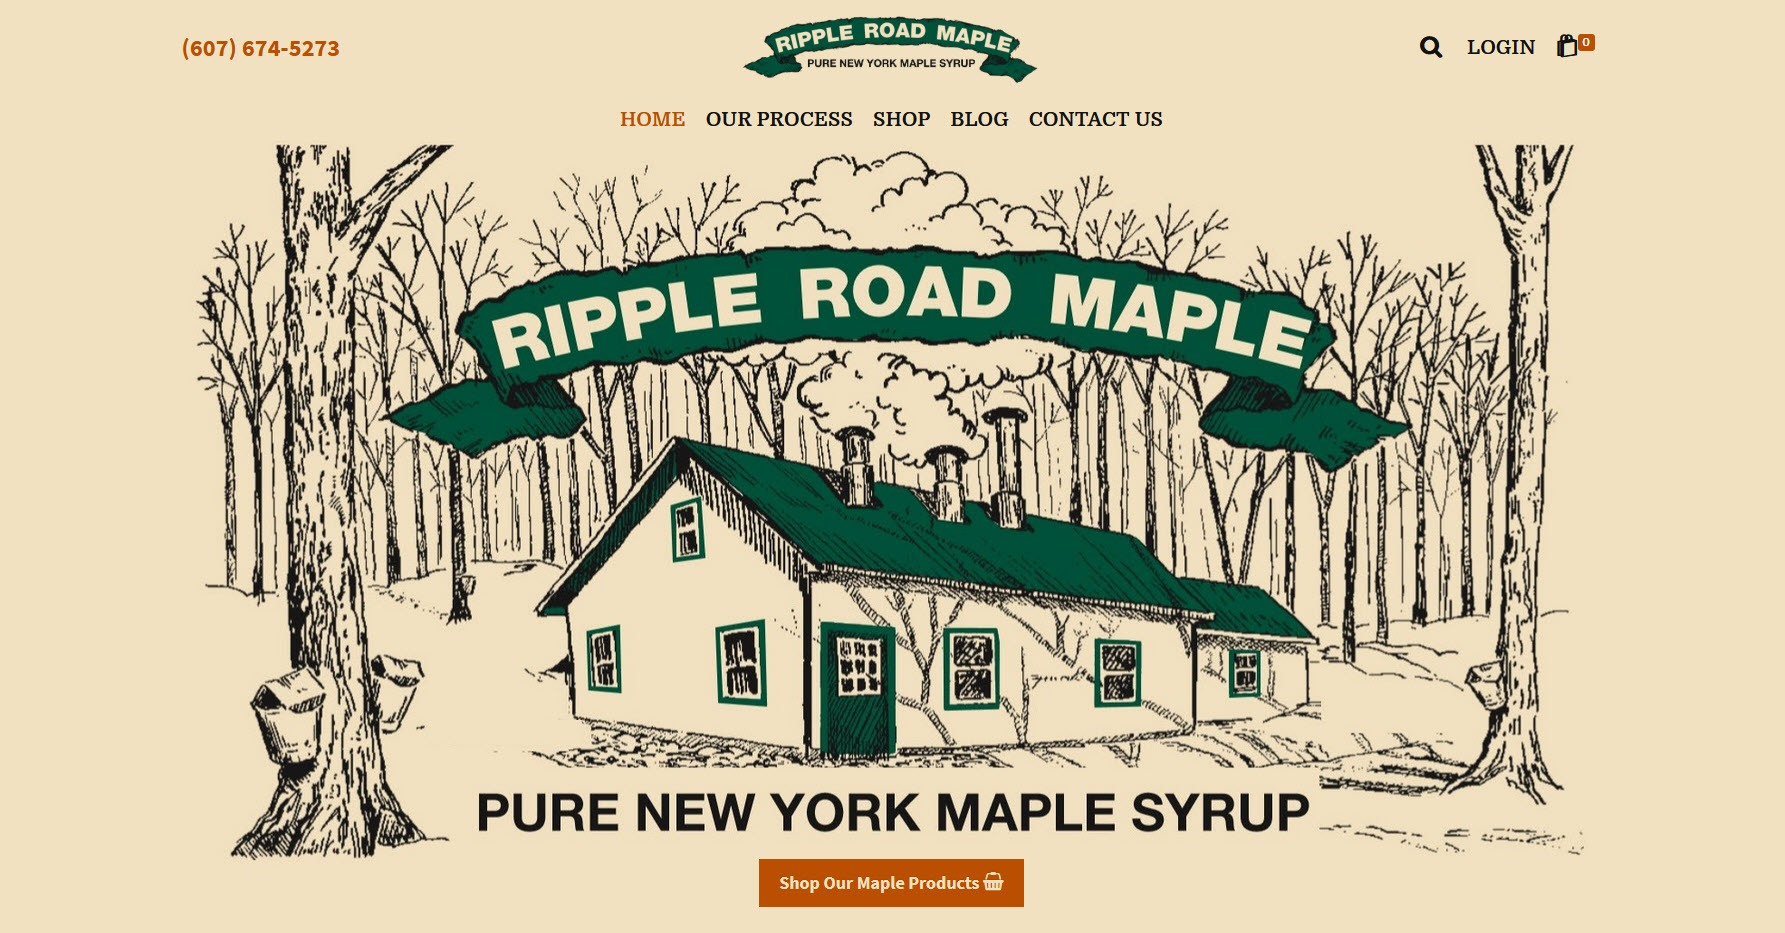 Ripple Road Maple - Pure New York Maple Syrup, Norwich, New York